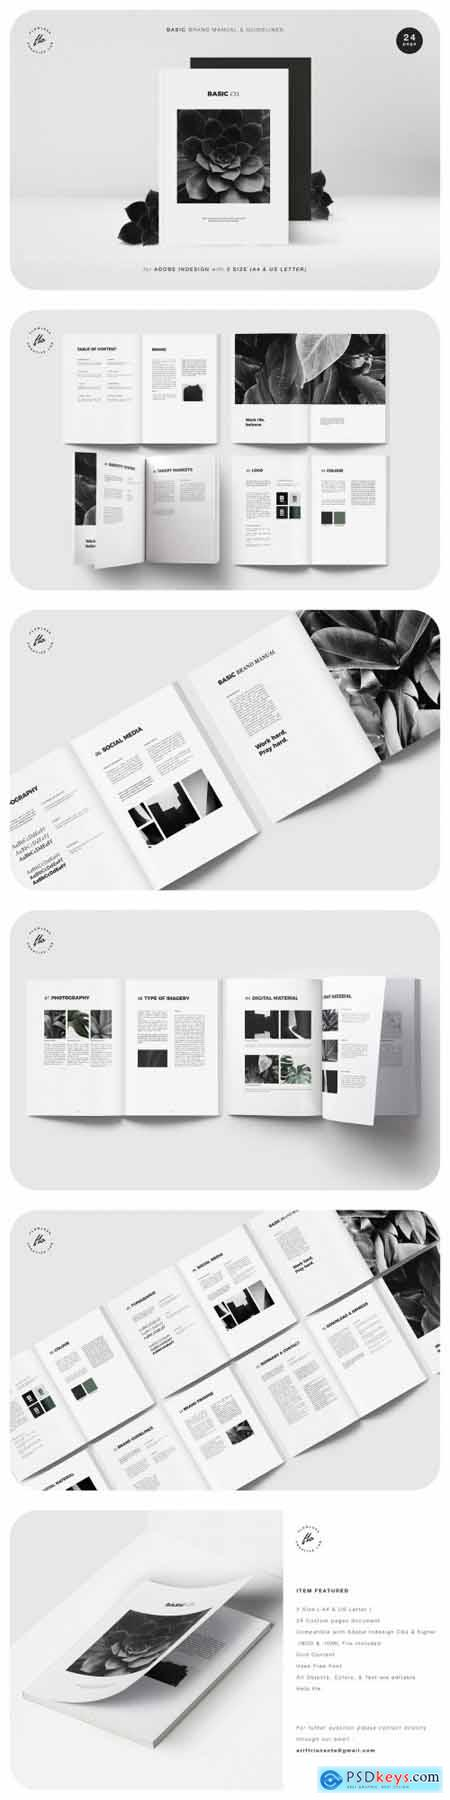 Basic Brand Manual & Guidelines 2591324